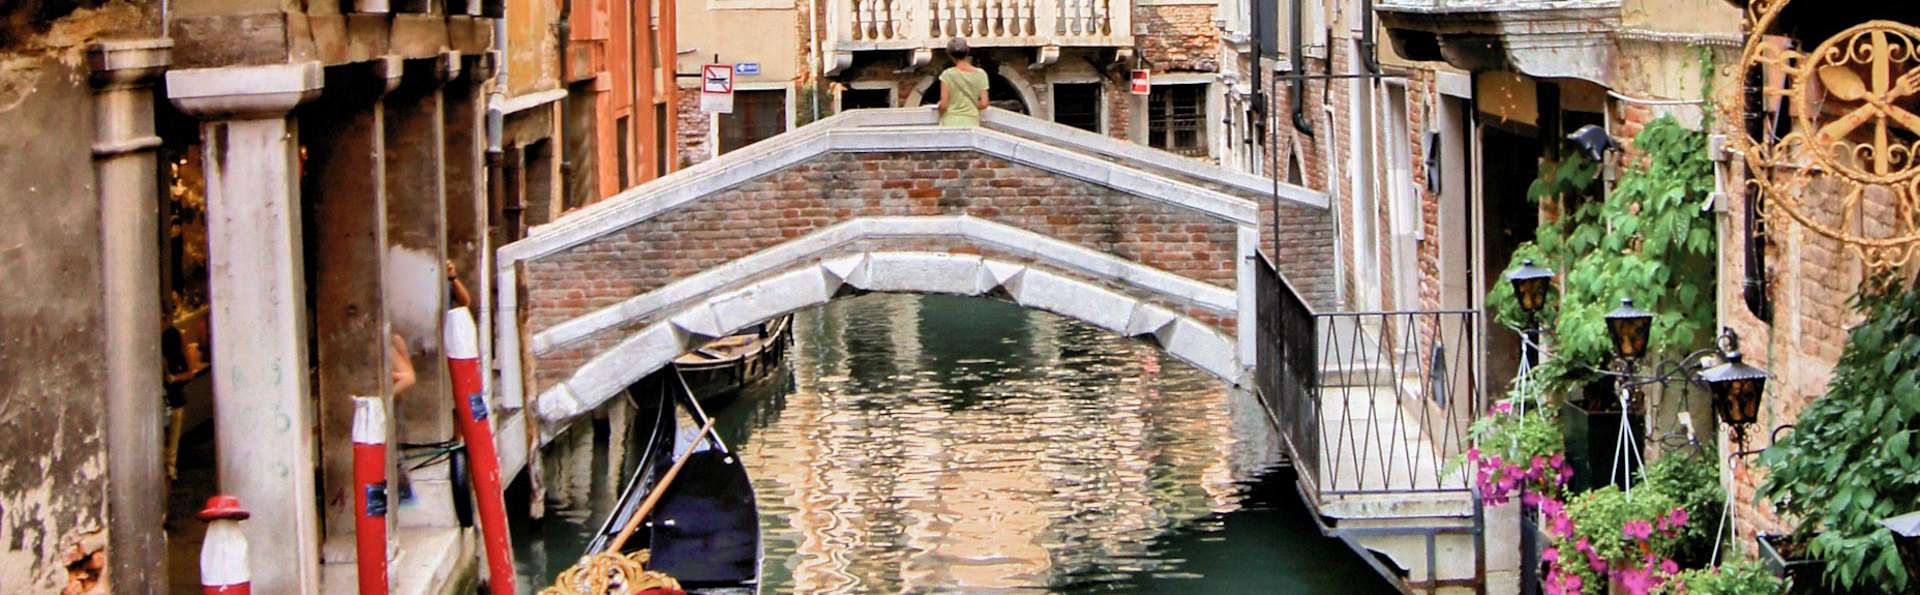 Residenza Manin Apartments - EDIT_VENECIA_05.jpg